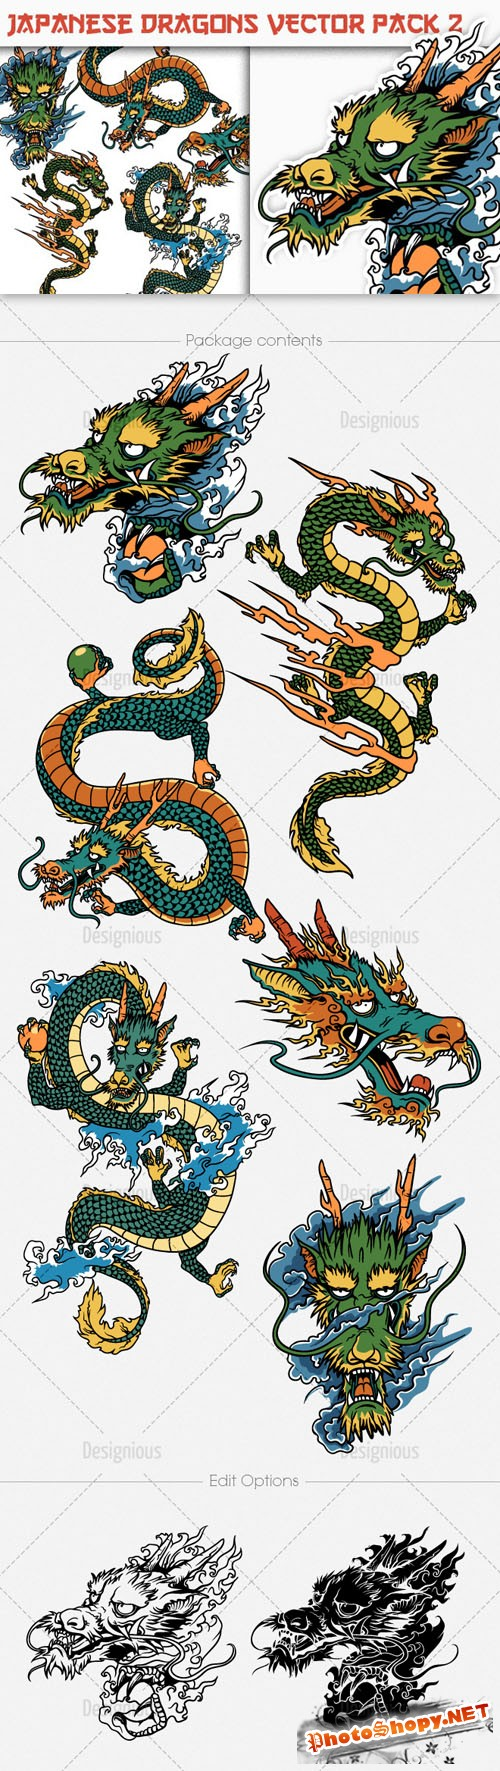 Japanese Dragons Photoshop Vector Pack 2